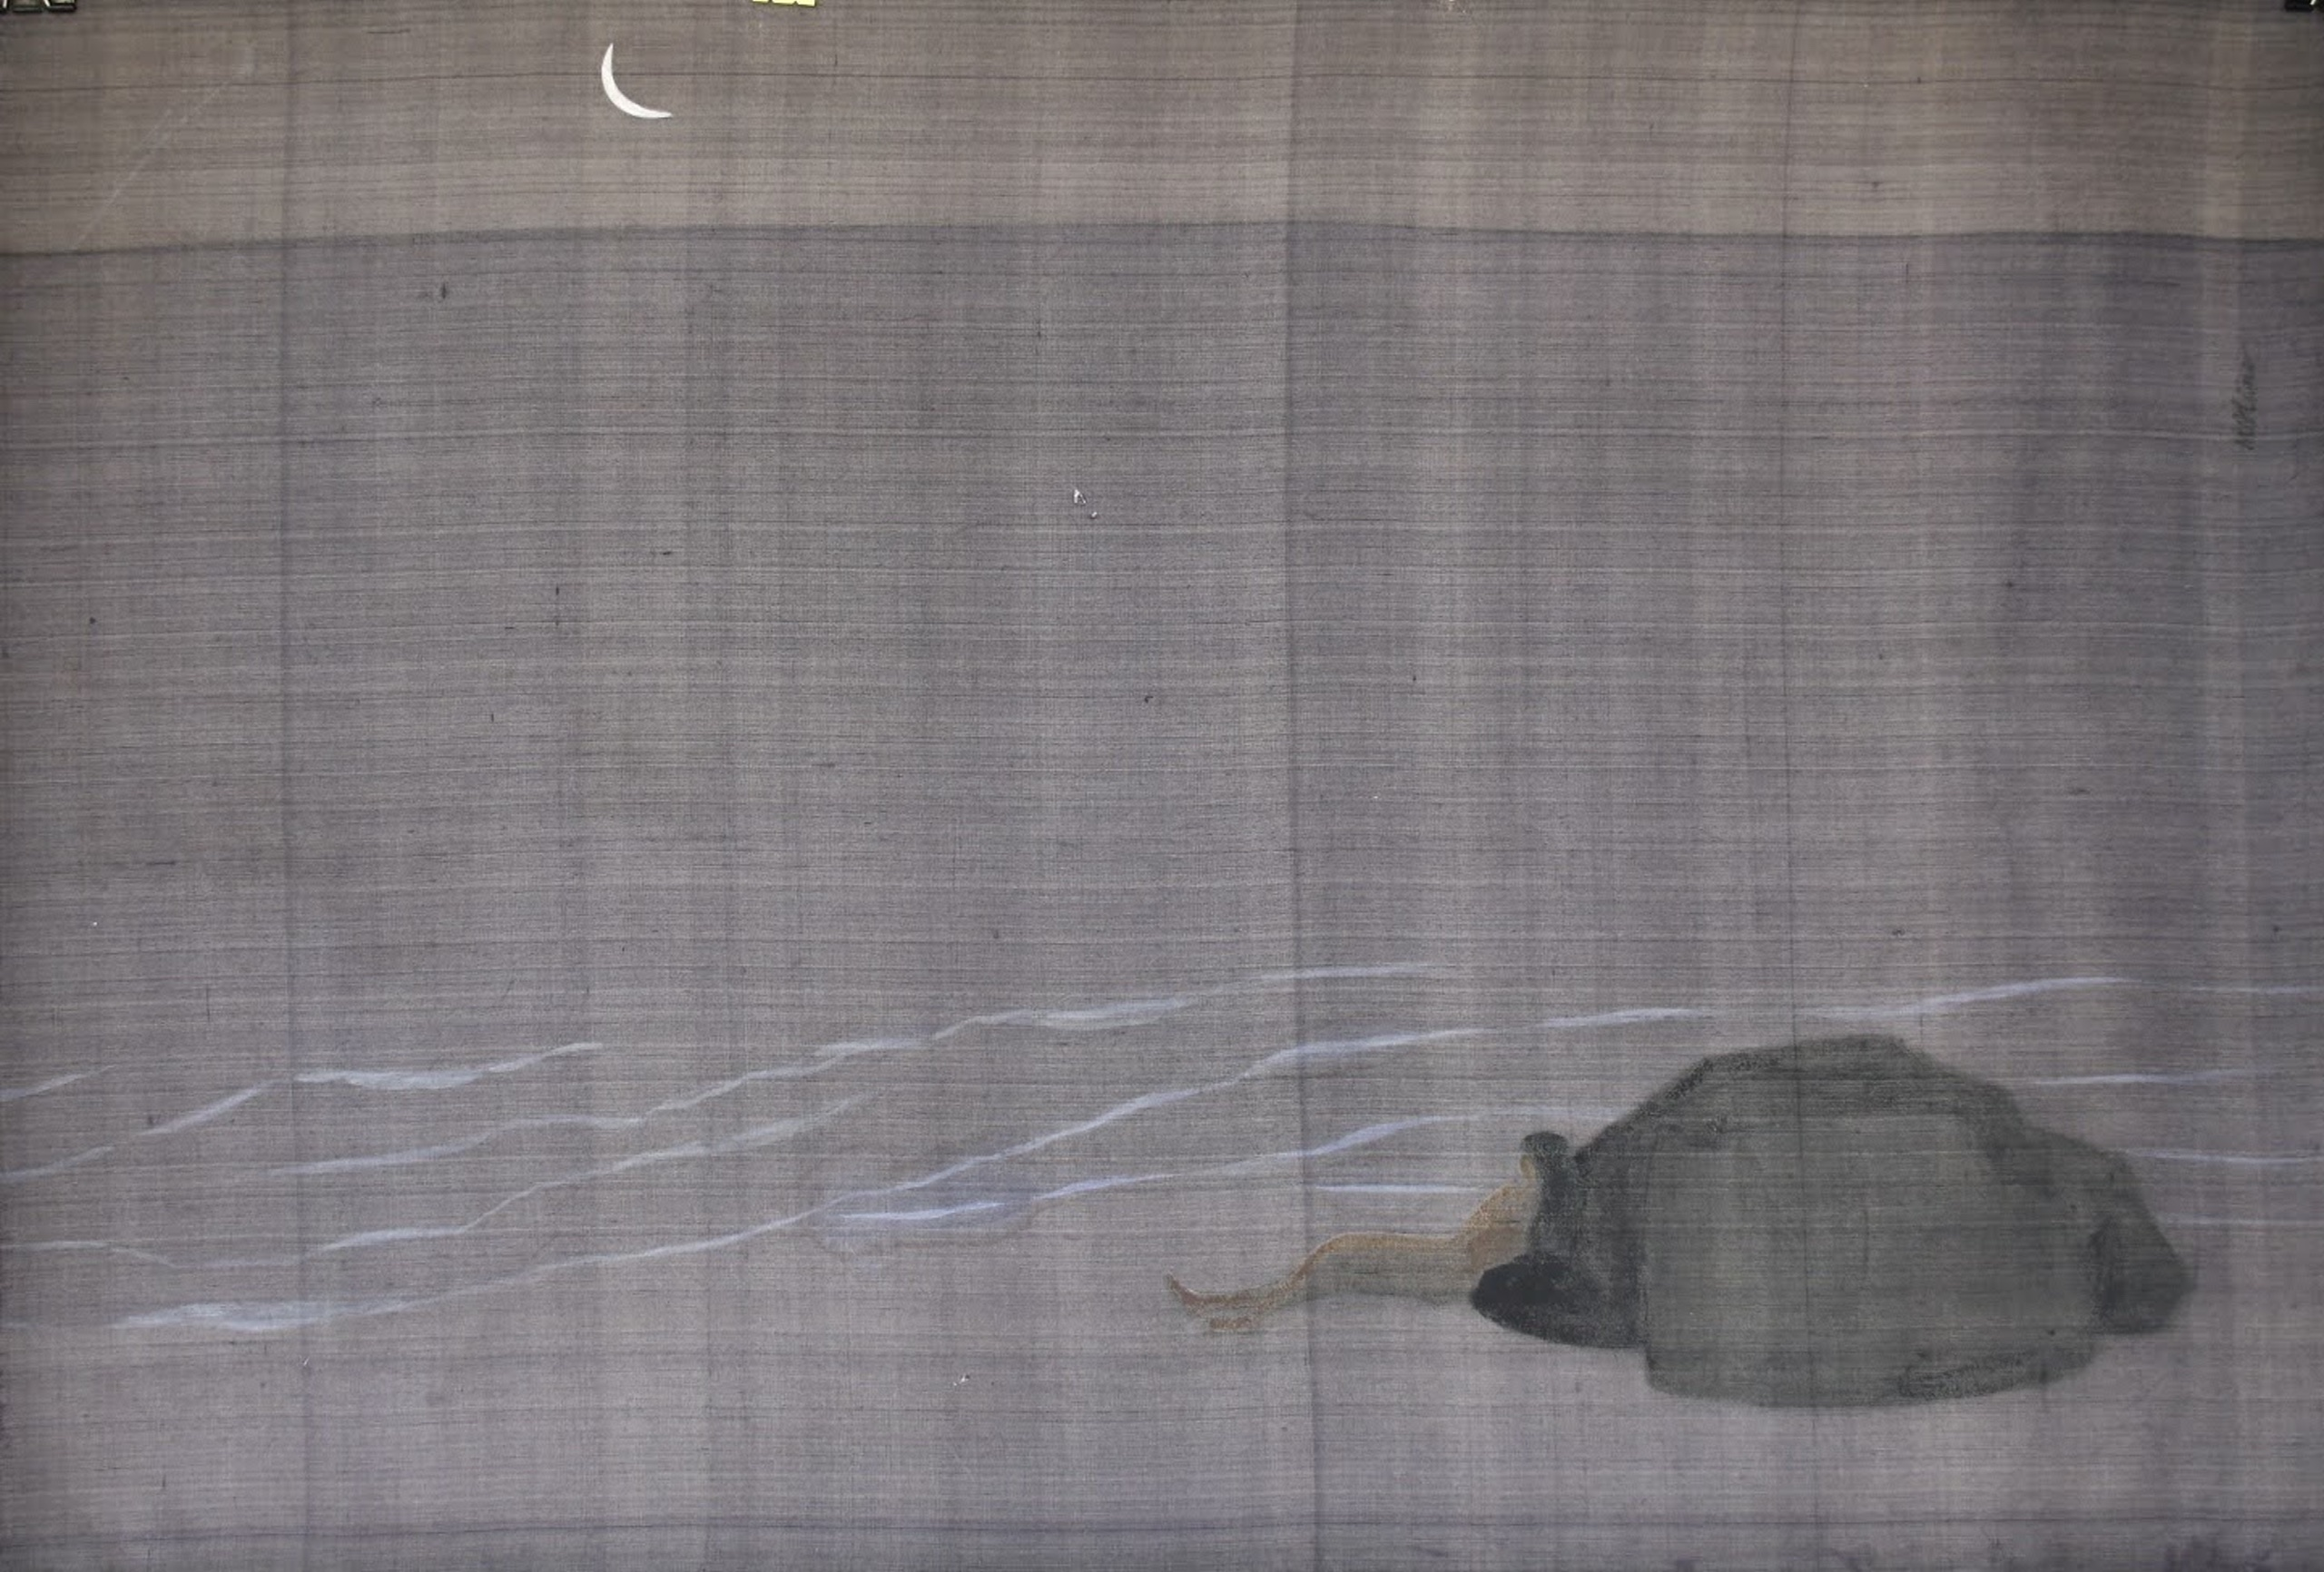 Sea at night, silk painting, 78cmx118cm by the artist Hoang Minh Hang in a supplied photo.